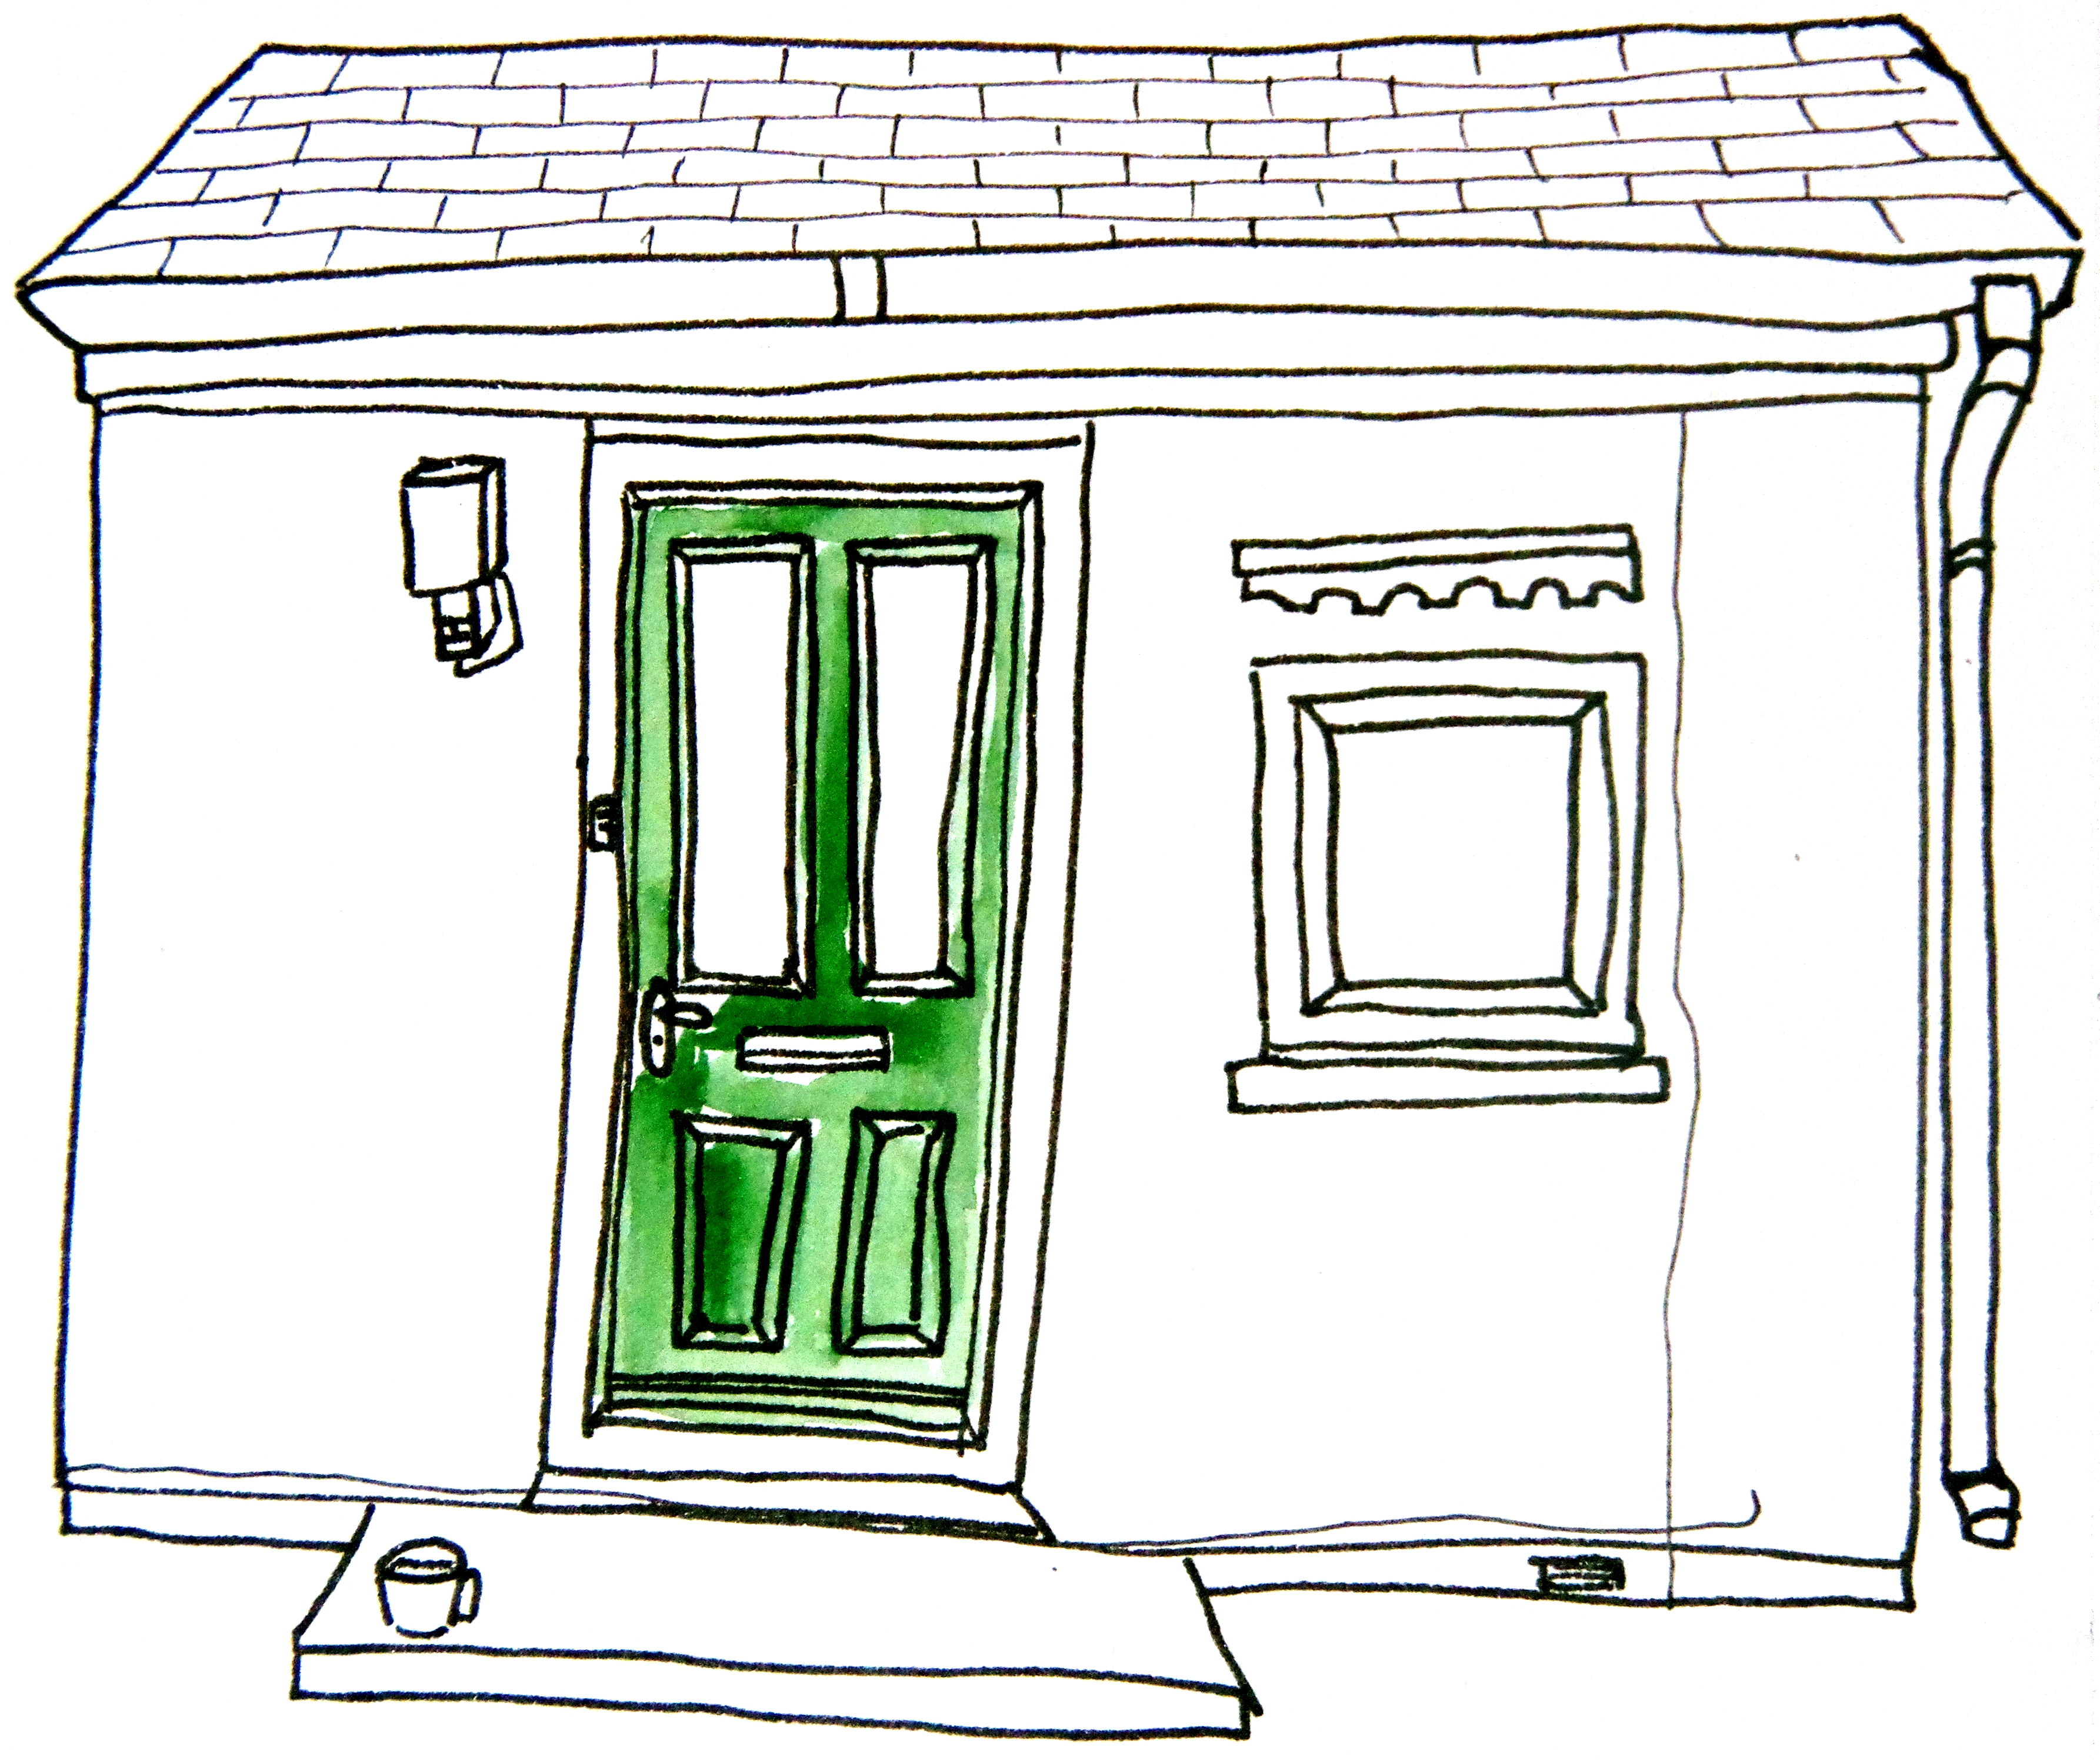 Simple door drawing - Front Door Drawing Front Door Drawing Clipart Panda Free Clipart Images